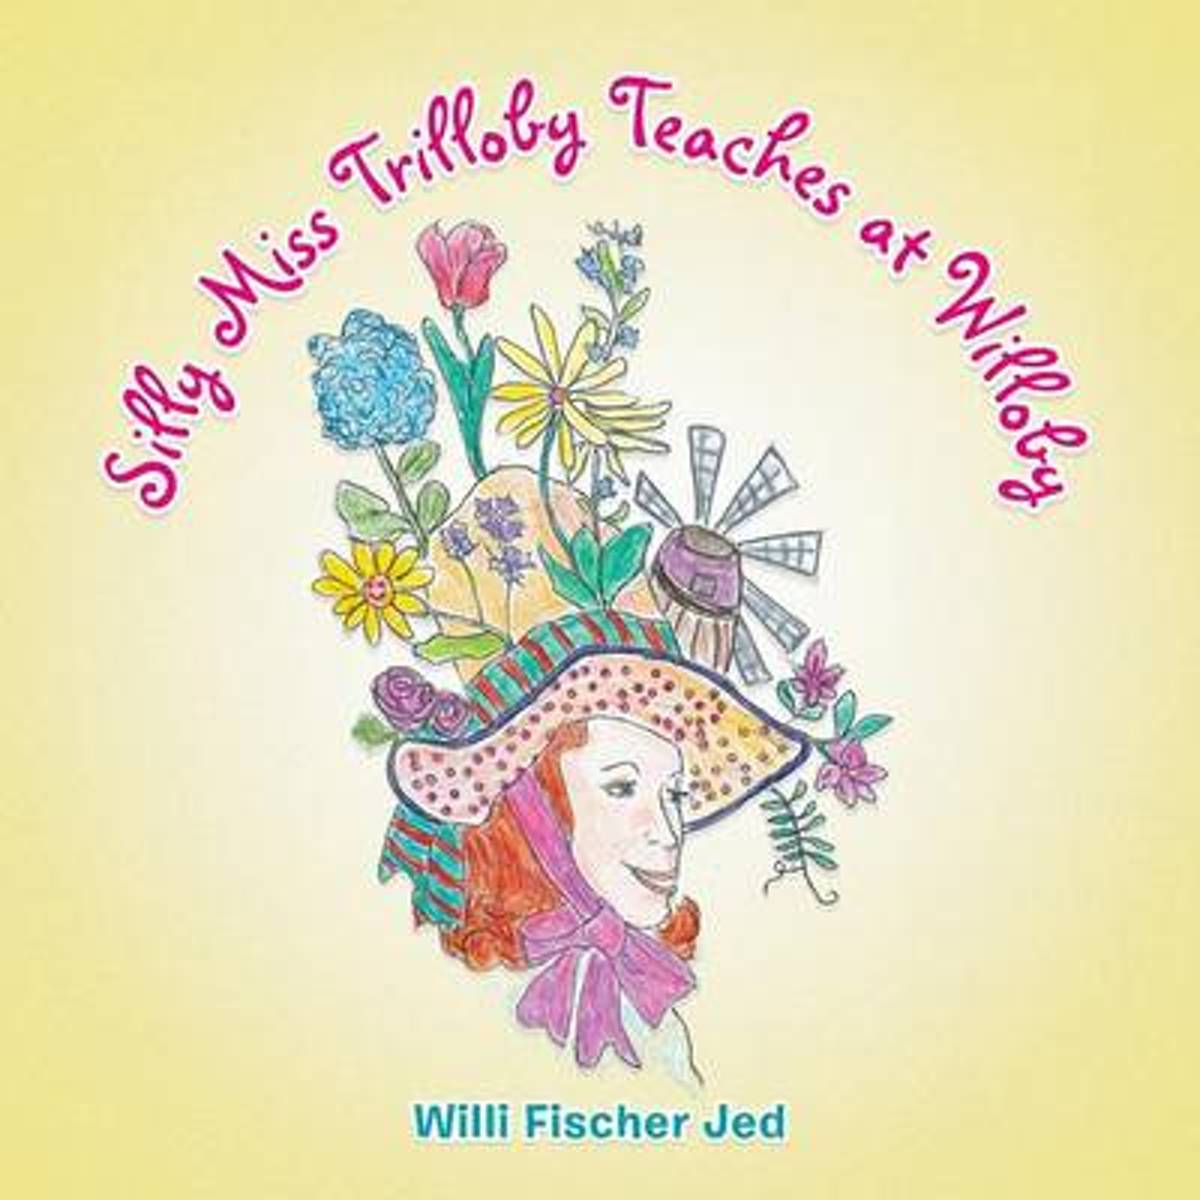 Silly Miss Trilloby Teaches at Willoby